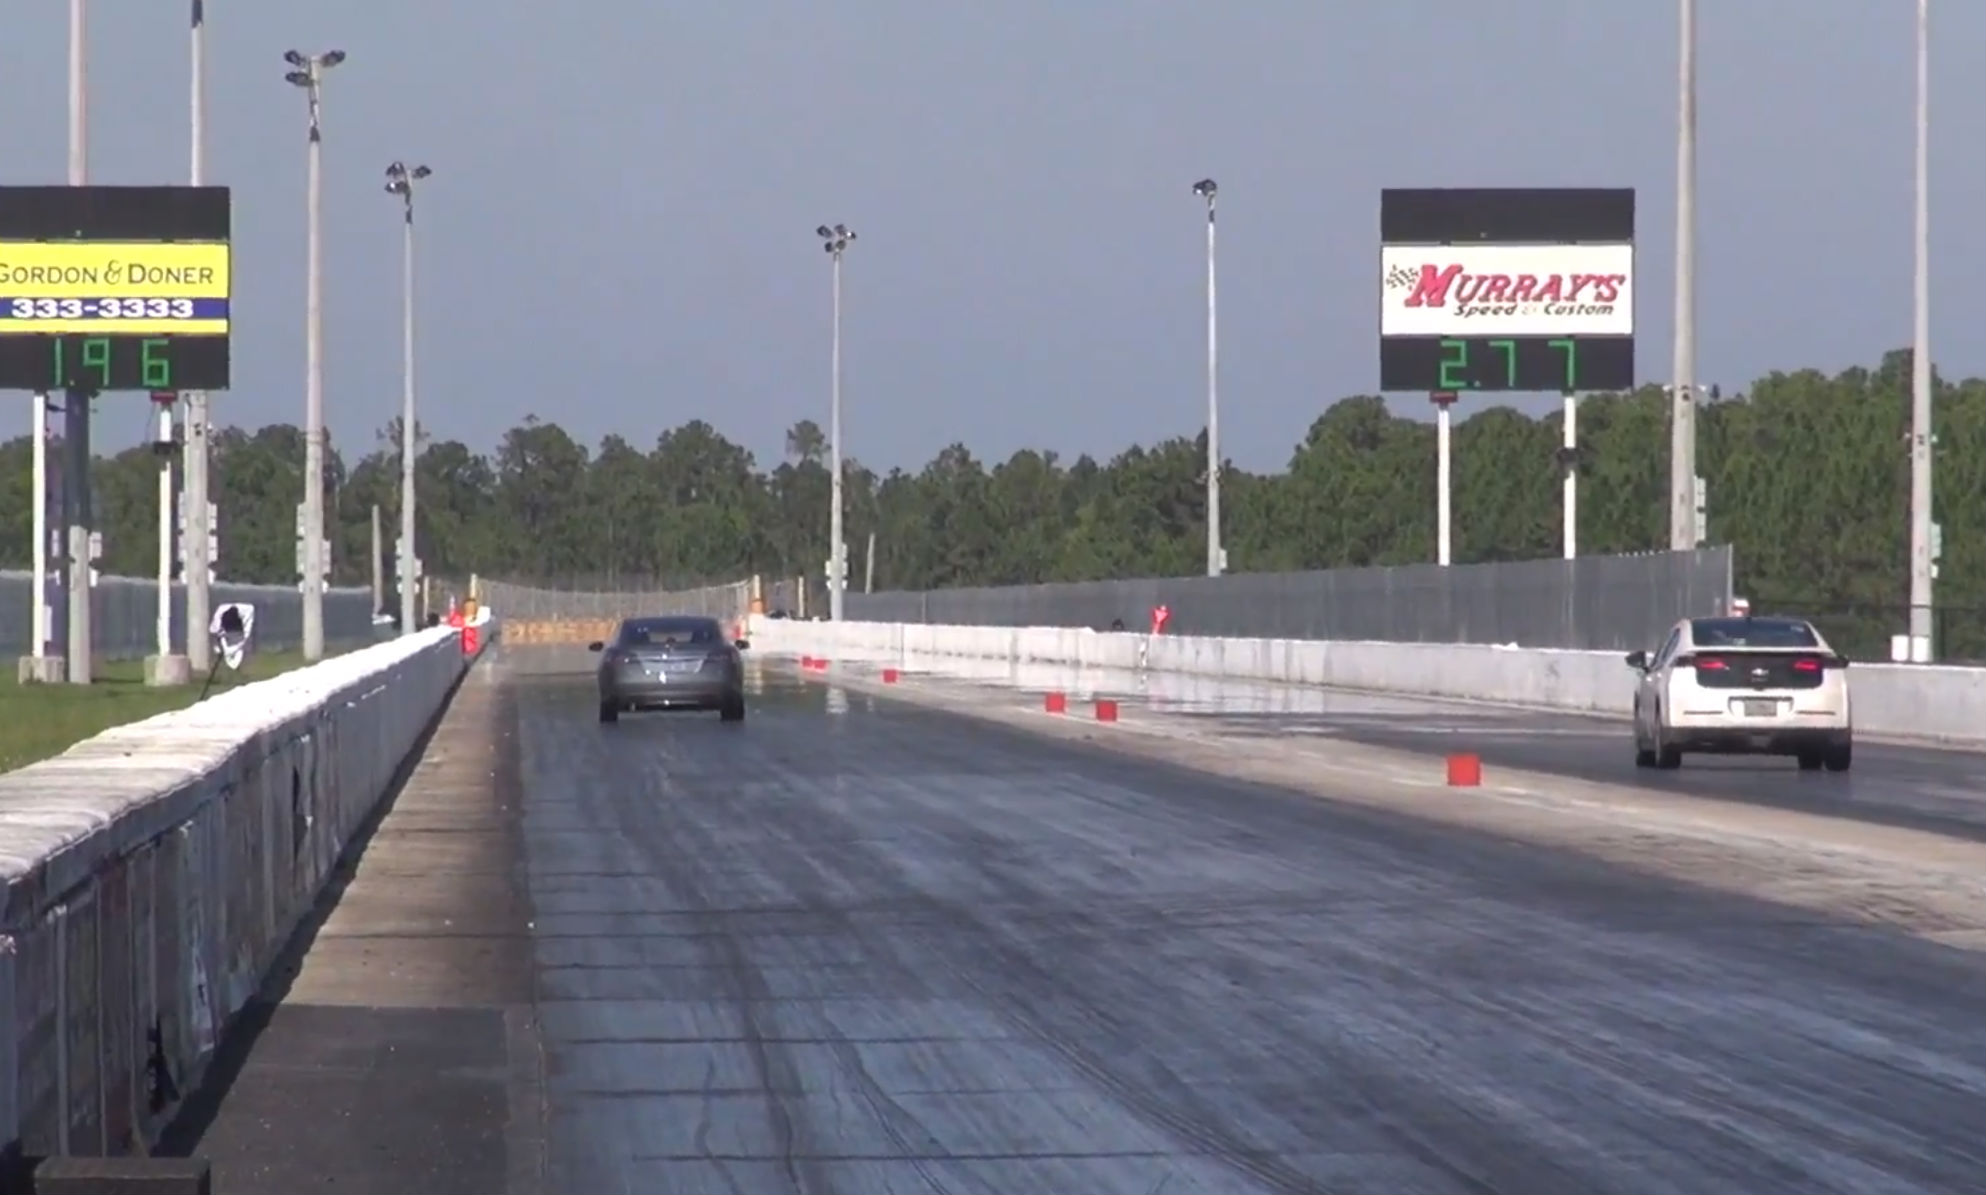 Vol vs Model S drag race